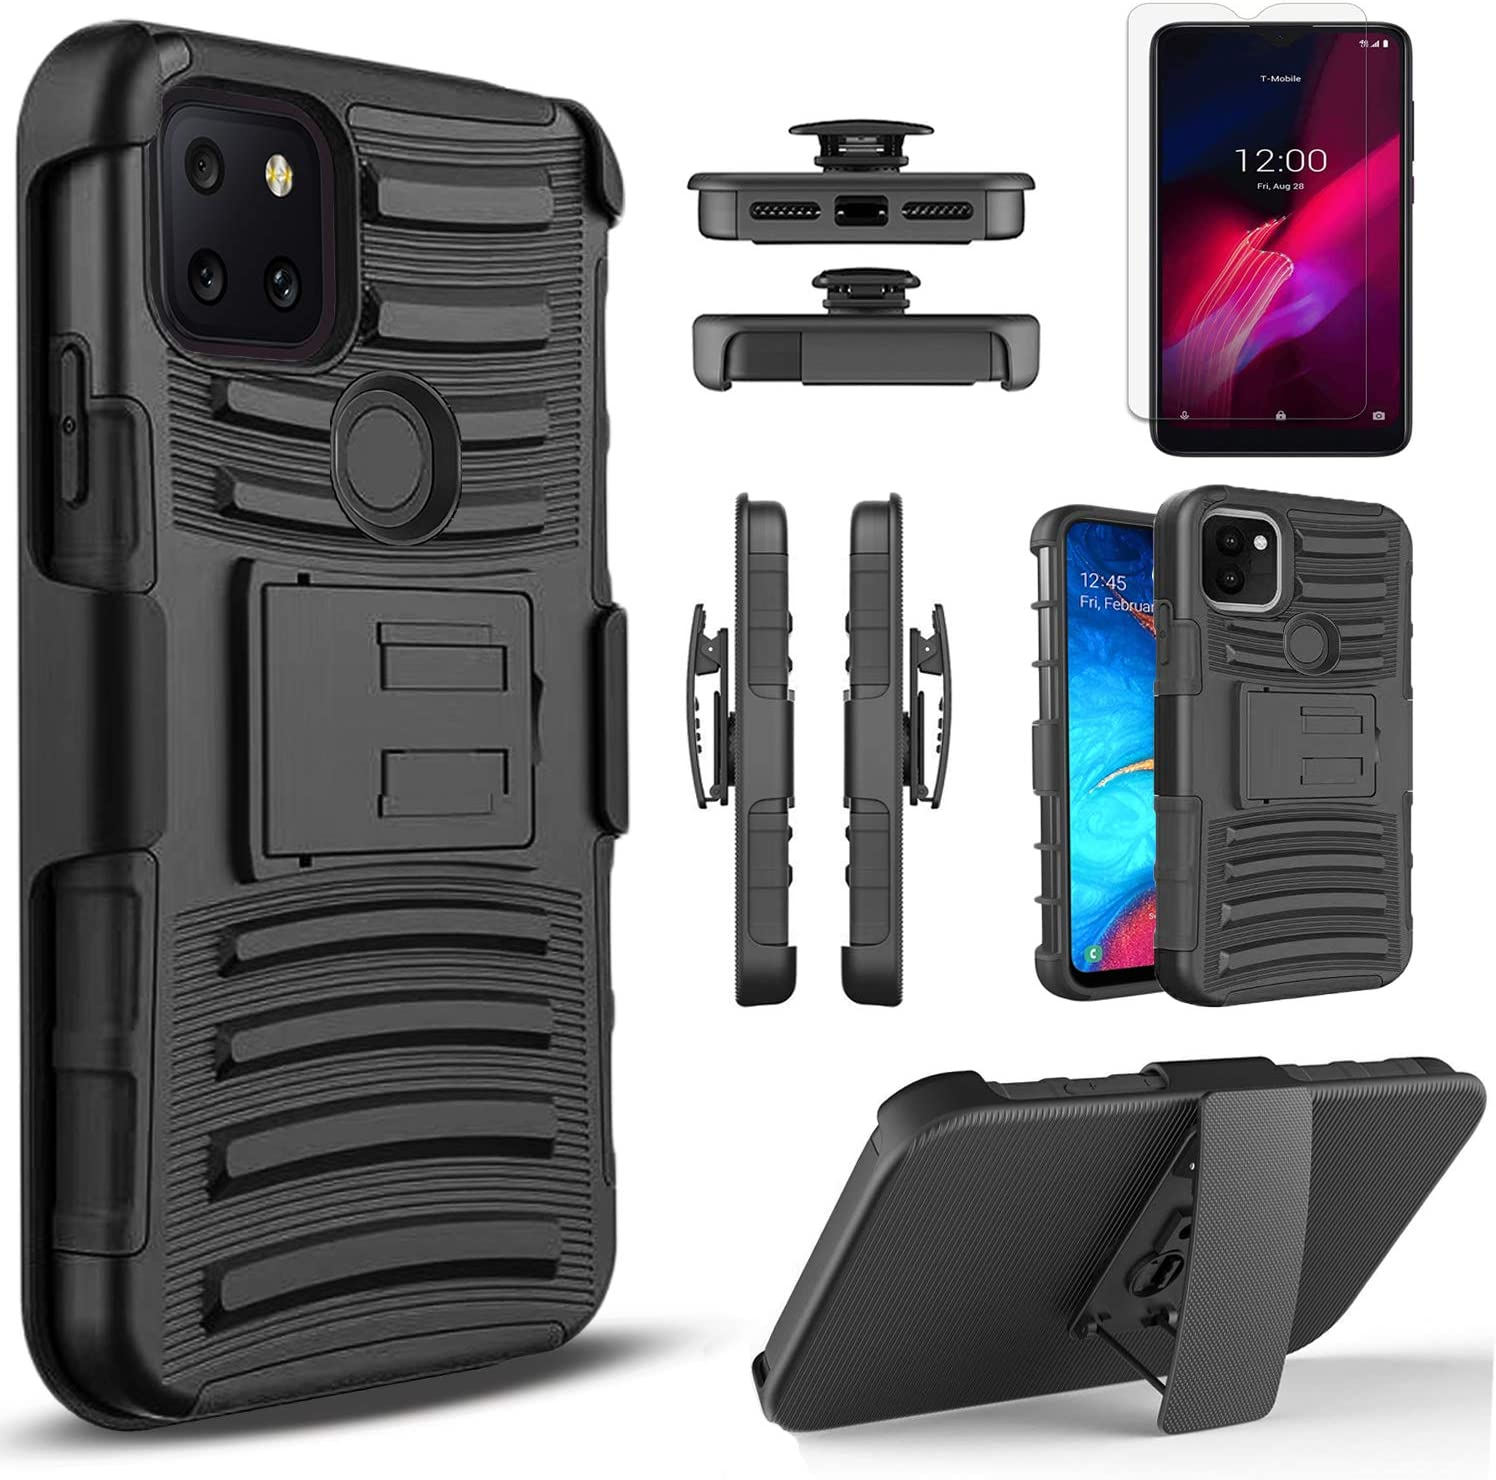 Circlemalls - T-Mobile Revvl 5G Phone Case, [Not Fit Revvl 4] With [Tempered Glass Screen Protector Included], Armor Heavy Duty Kickstand Cover With Belt Clip Holster - Black